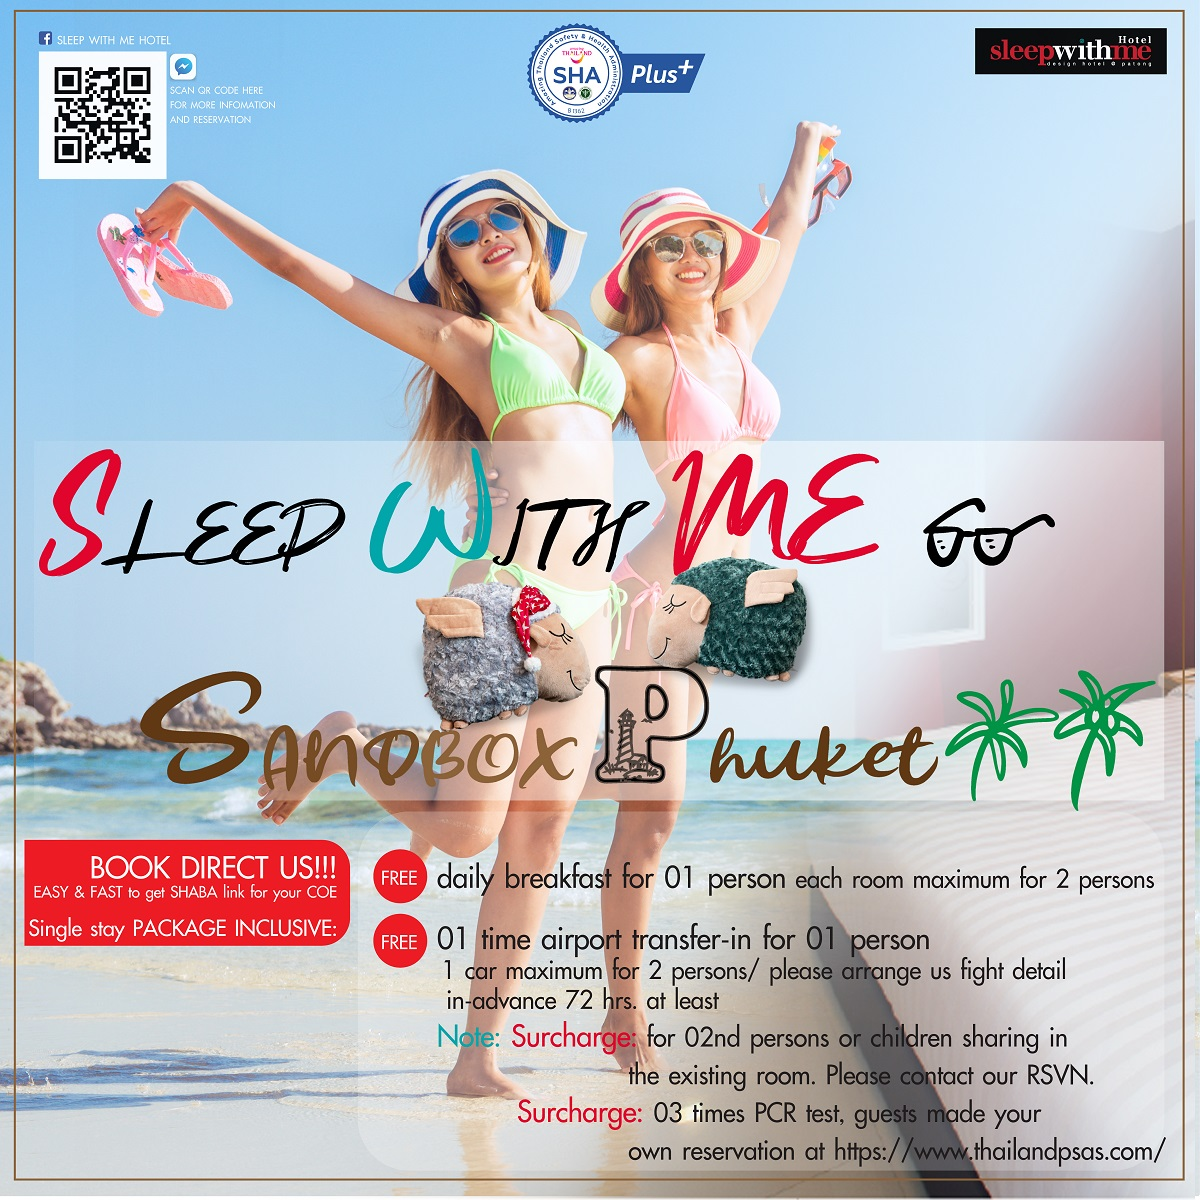 07 & 14 nights stay package: Phuket SANDBOX with me